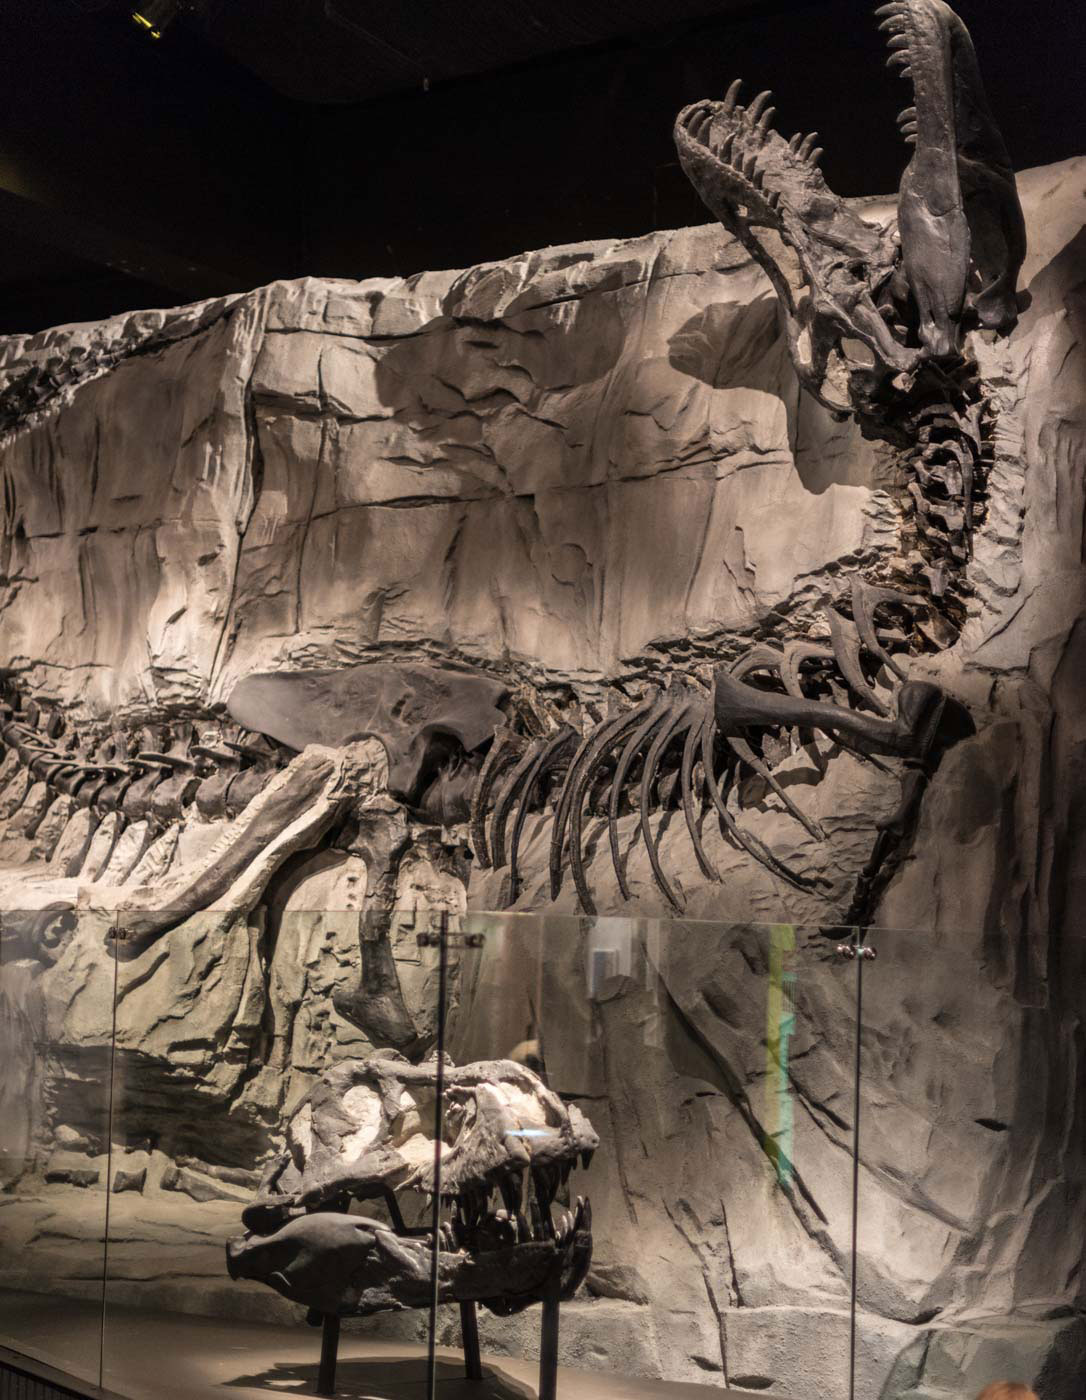 Black Beauty, largest, most intact T-rex in the world